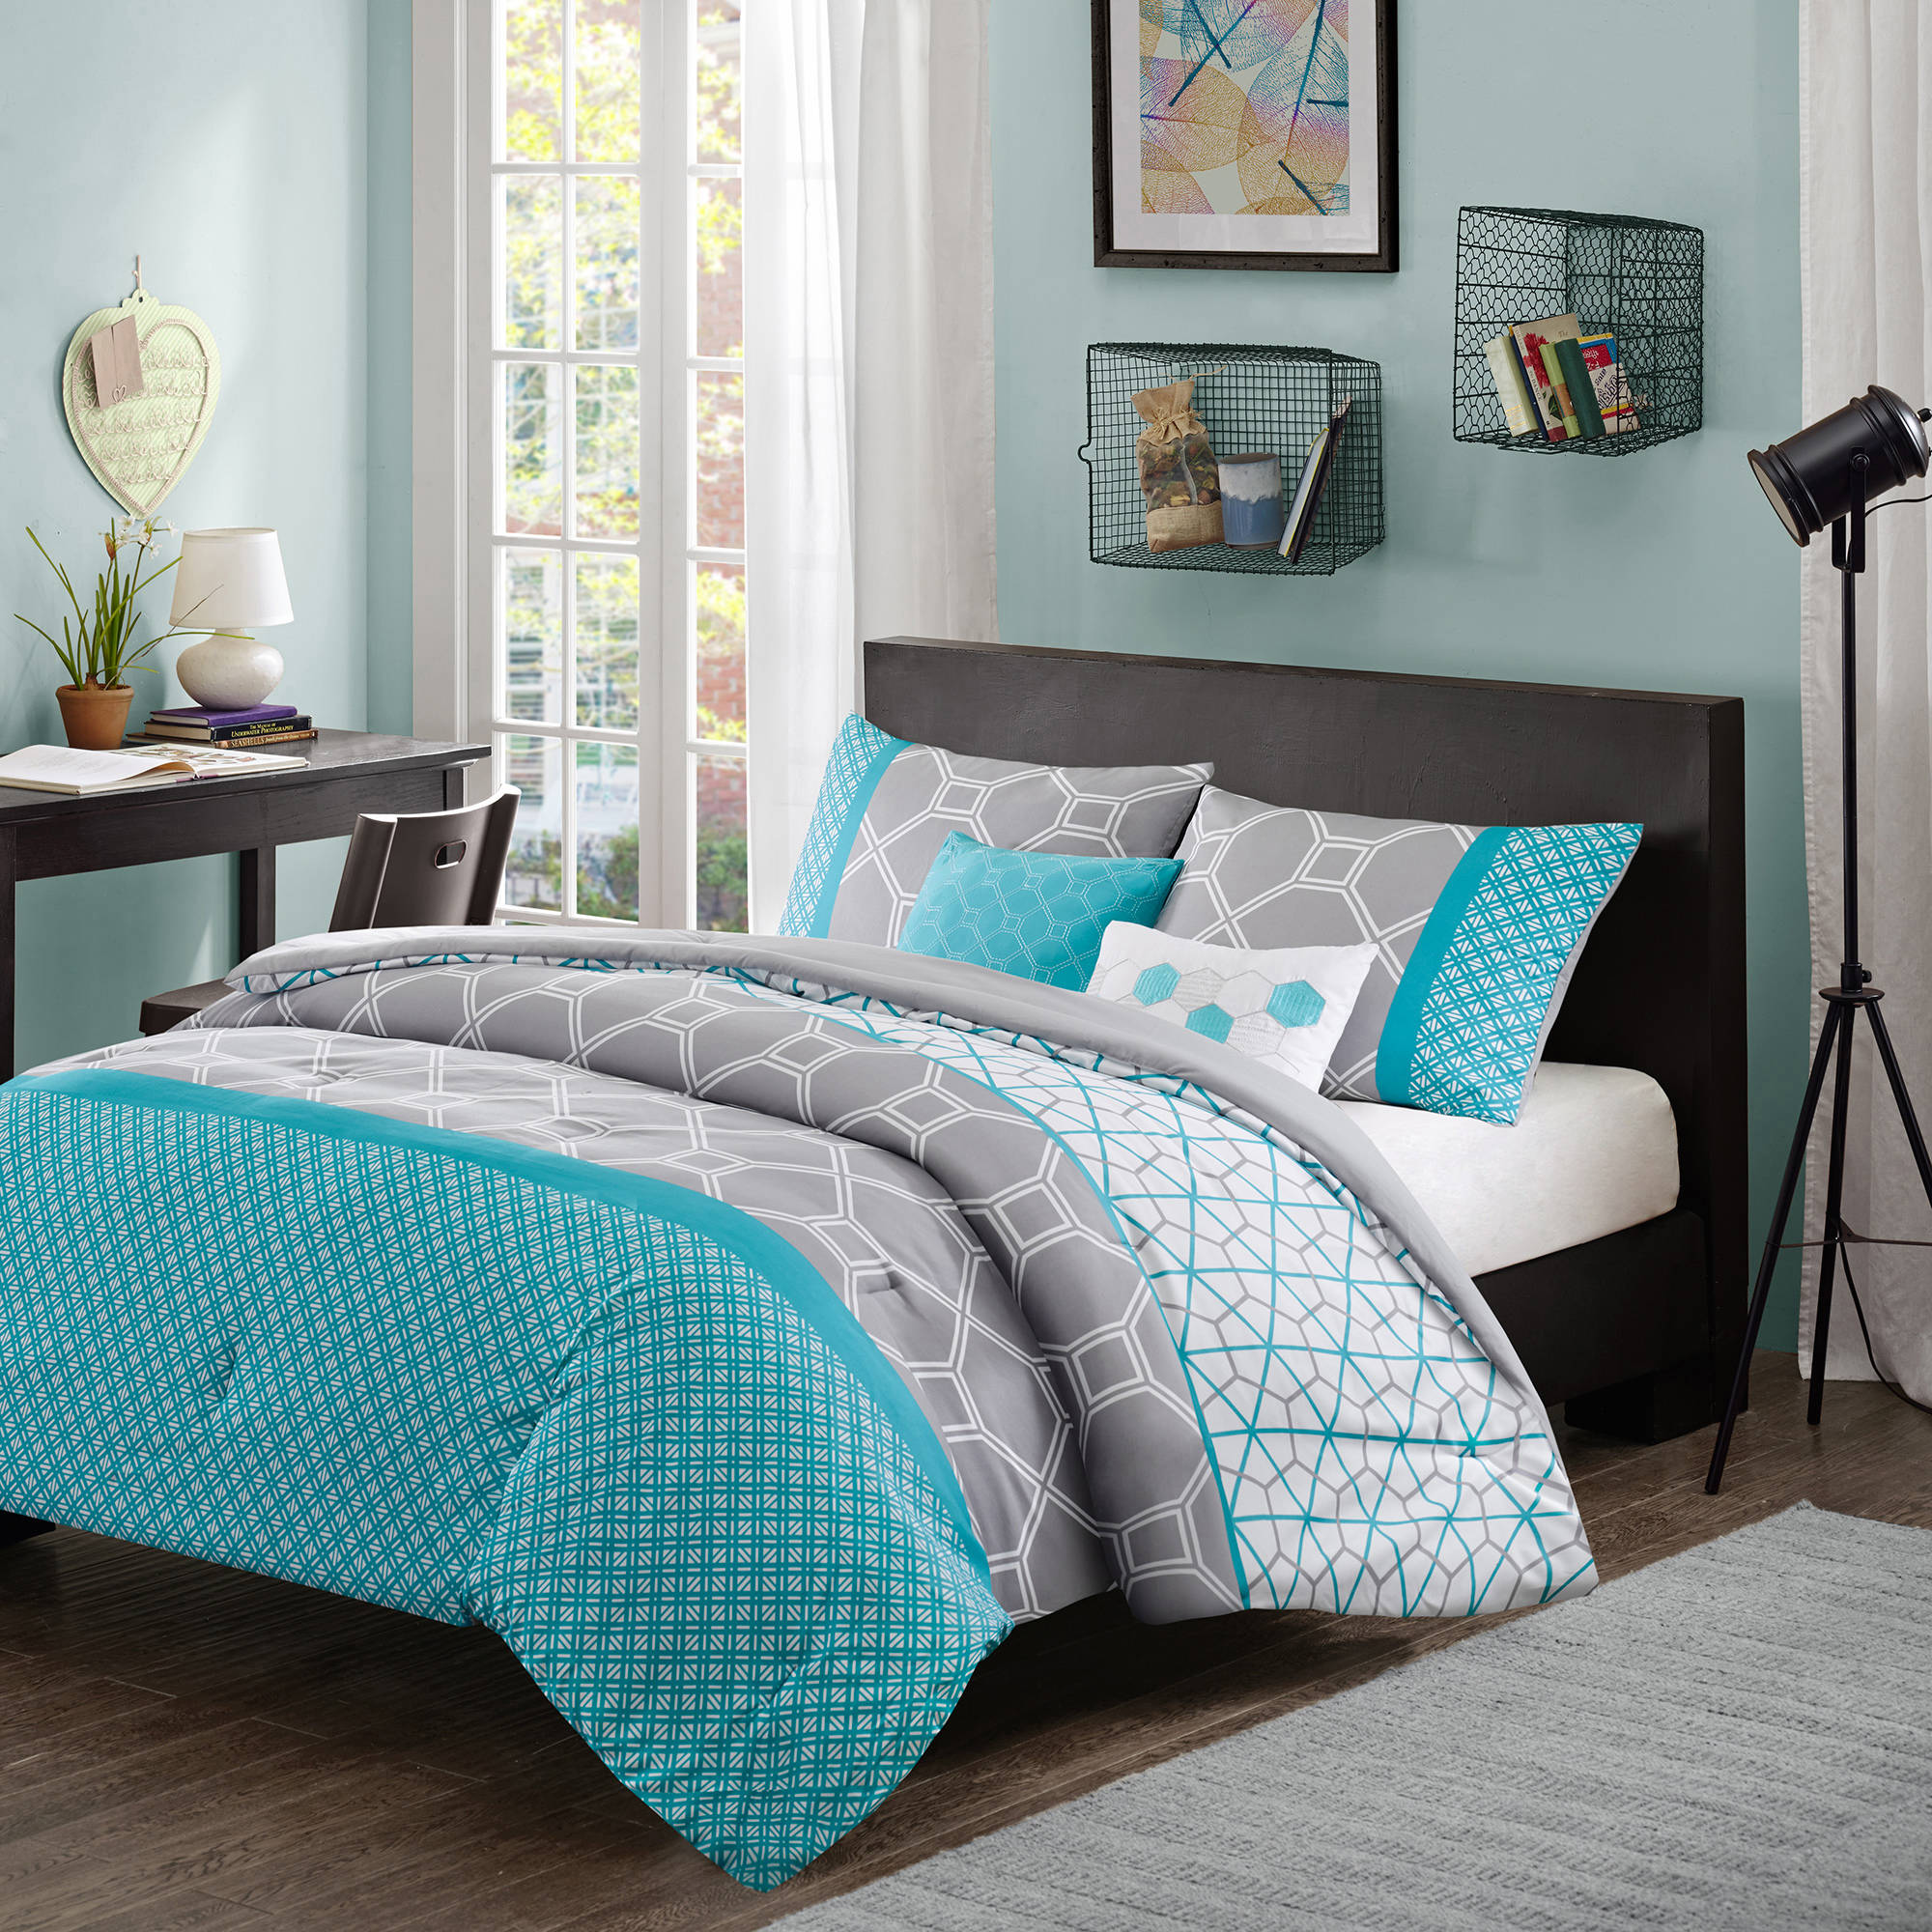 Attrayant Comforter Bedroom 5 Piece Queen Bedding Aqua Blue Grey Set Winter Bed Sheet  Sets